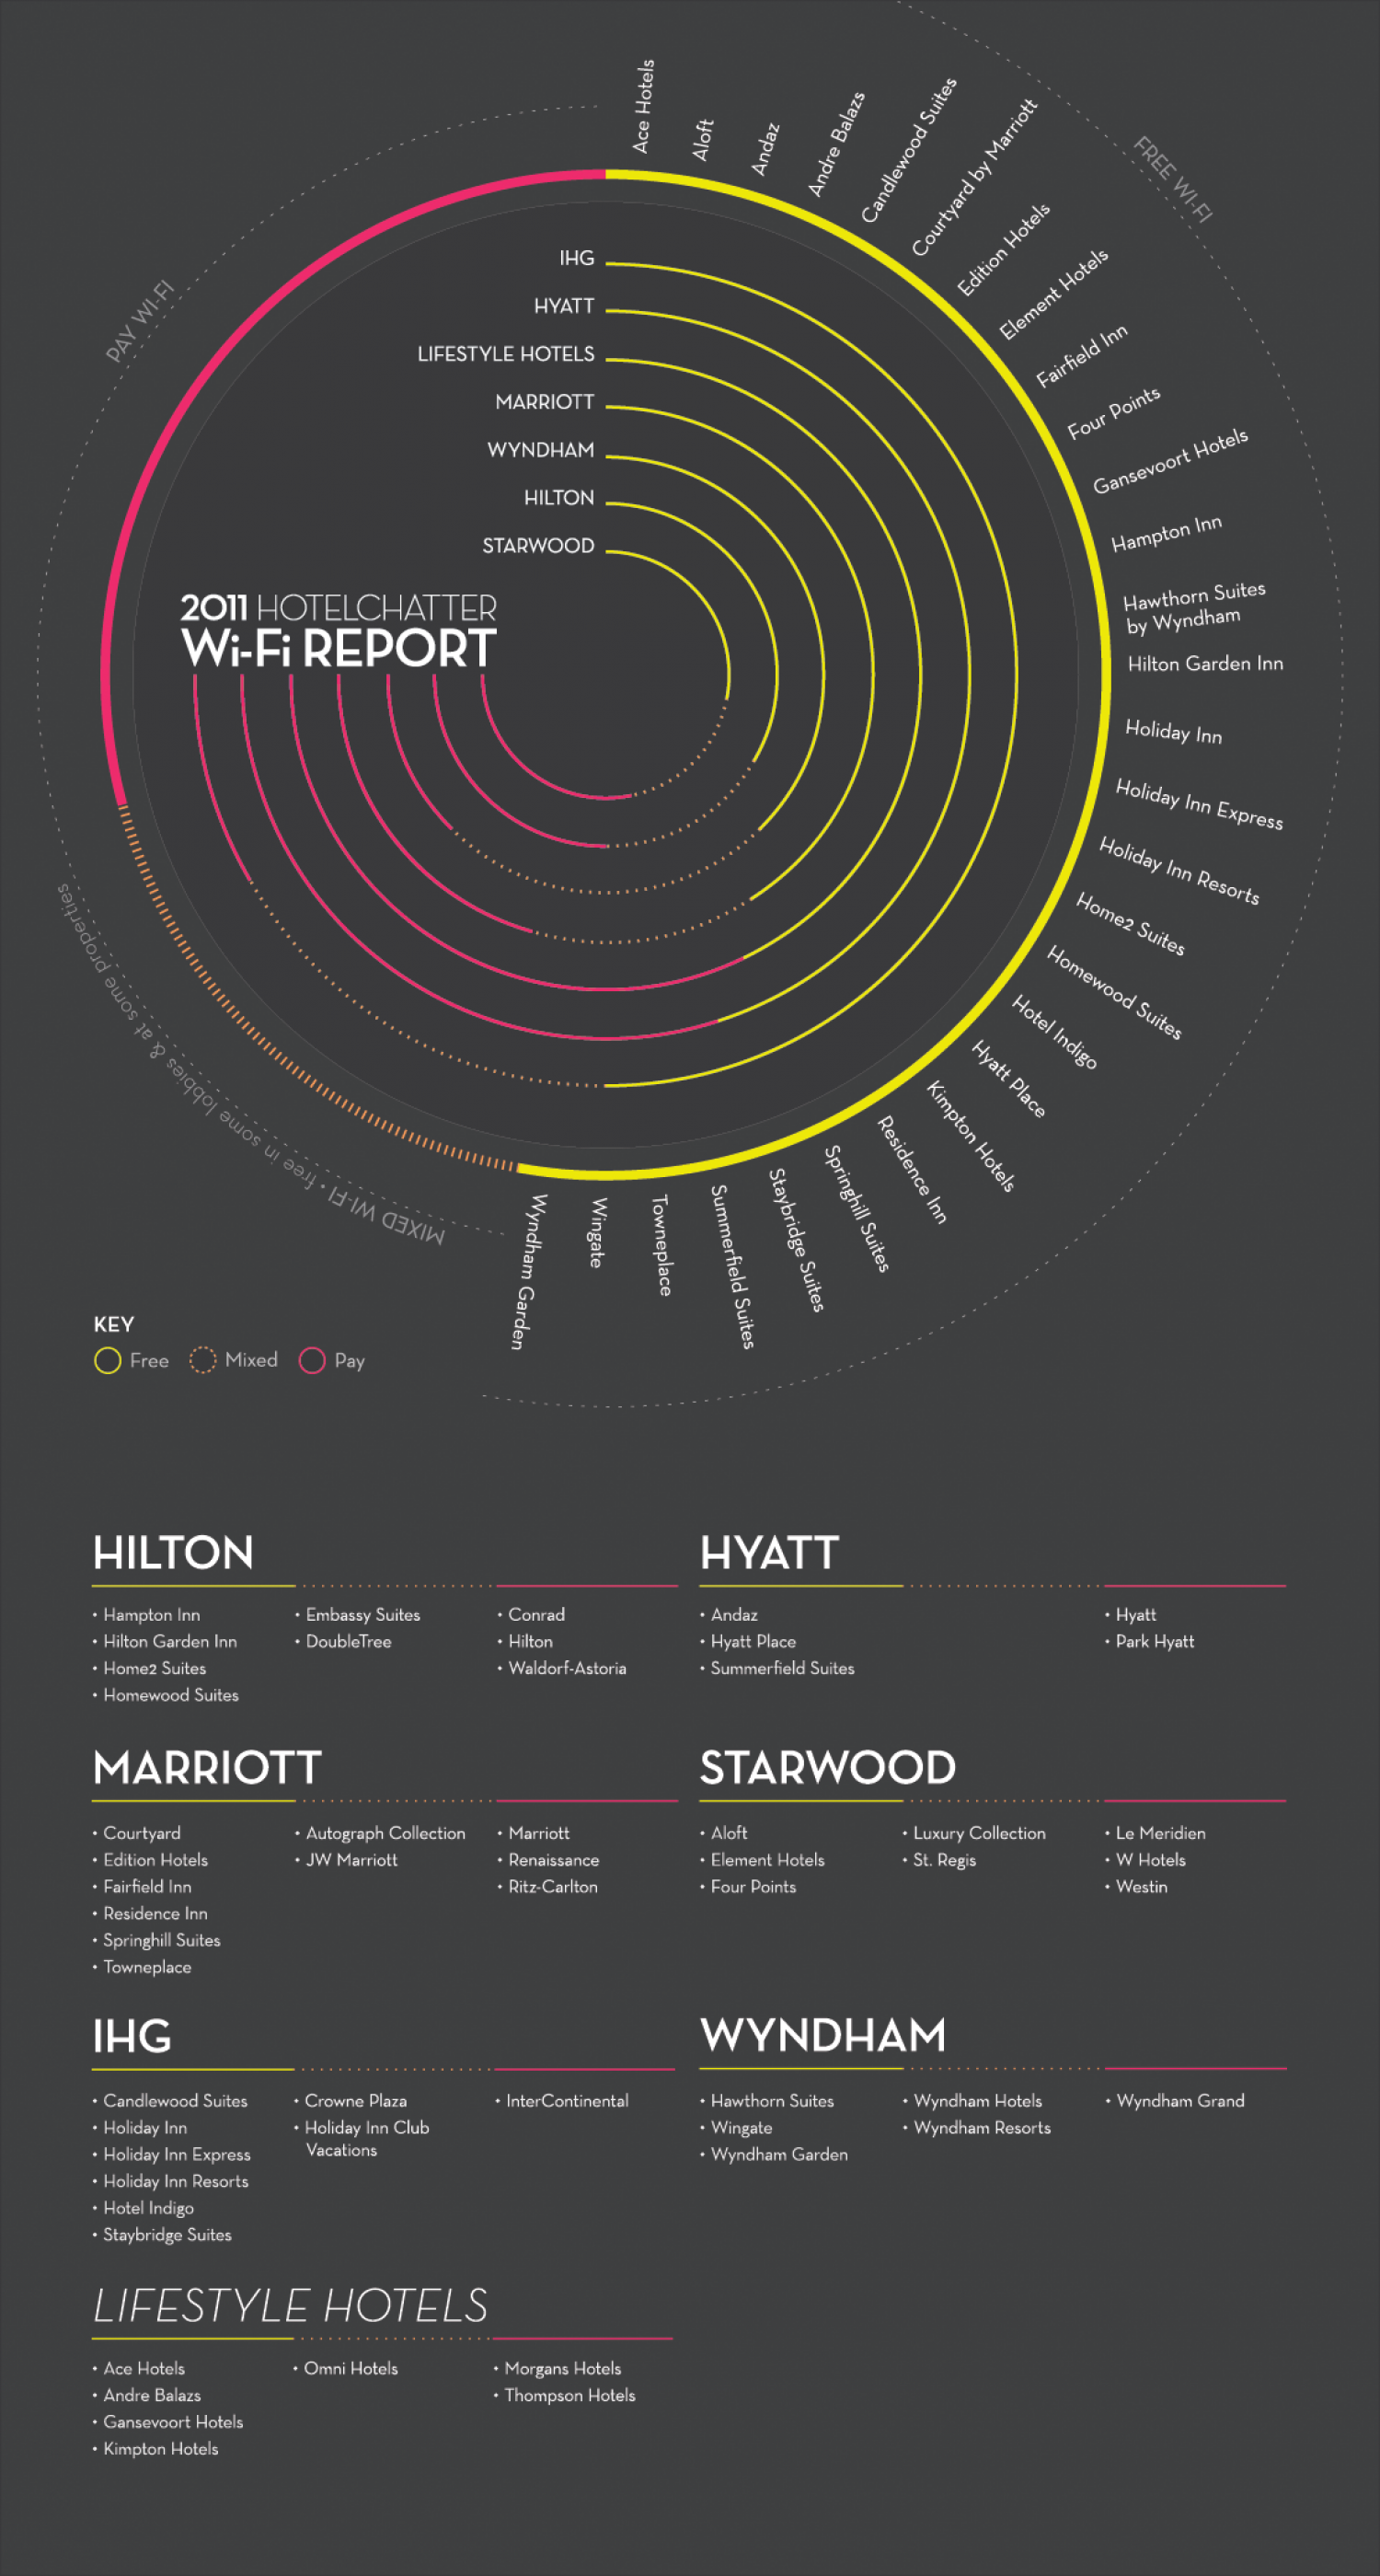 2011 HotelChatter Wi-Fi Report  Infographic